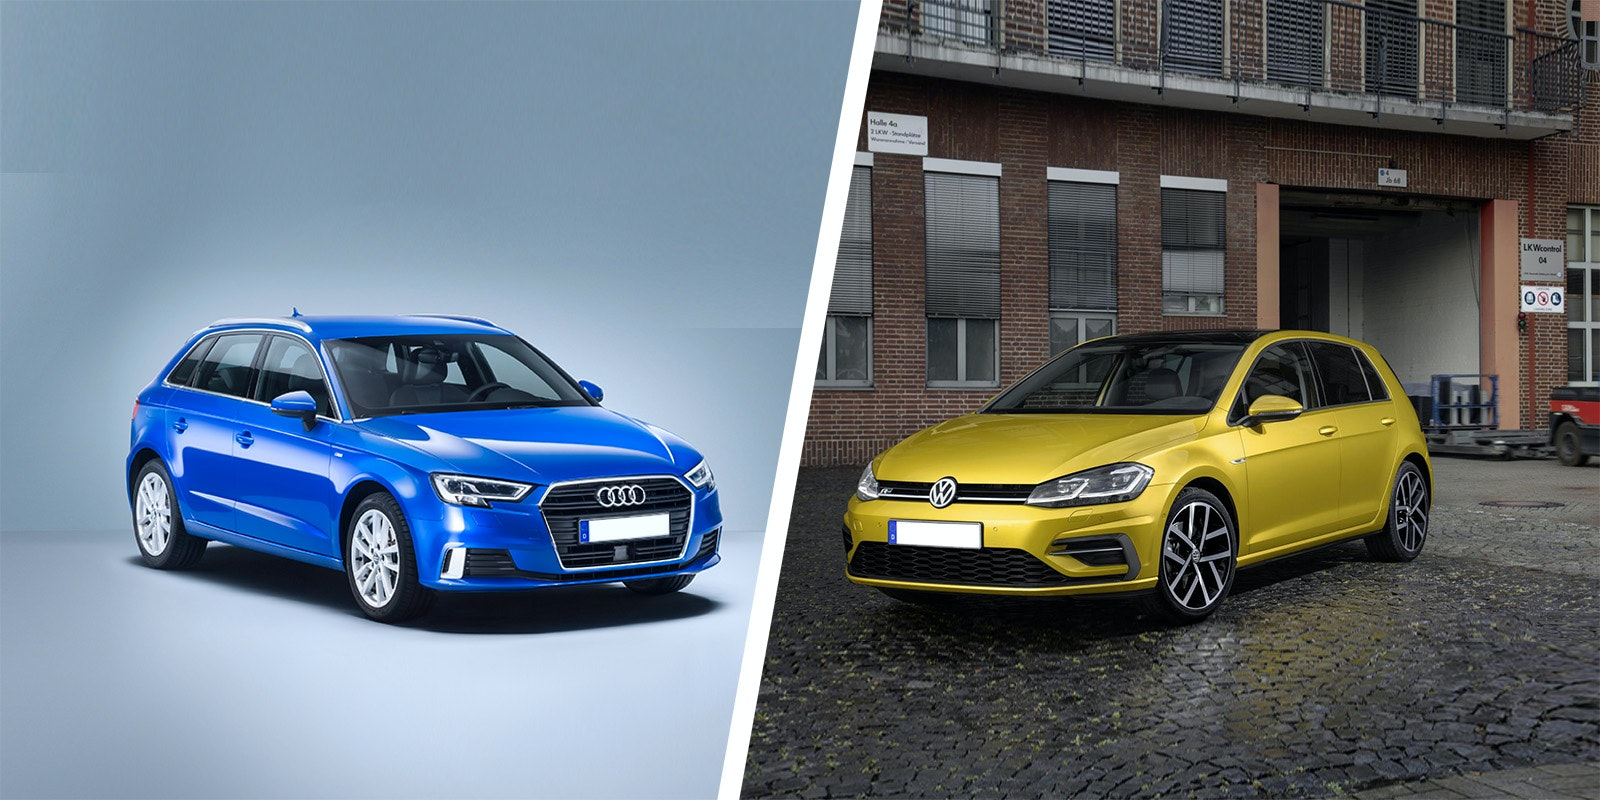 Audi a3 vs vw golf lead image.jpg?ixlib=rb 1.1